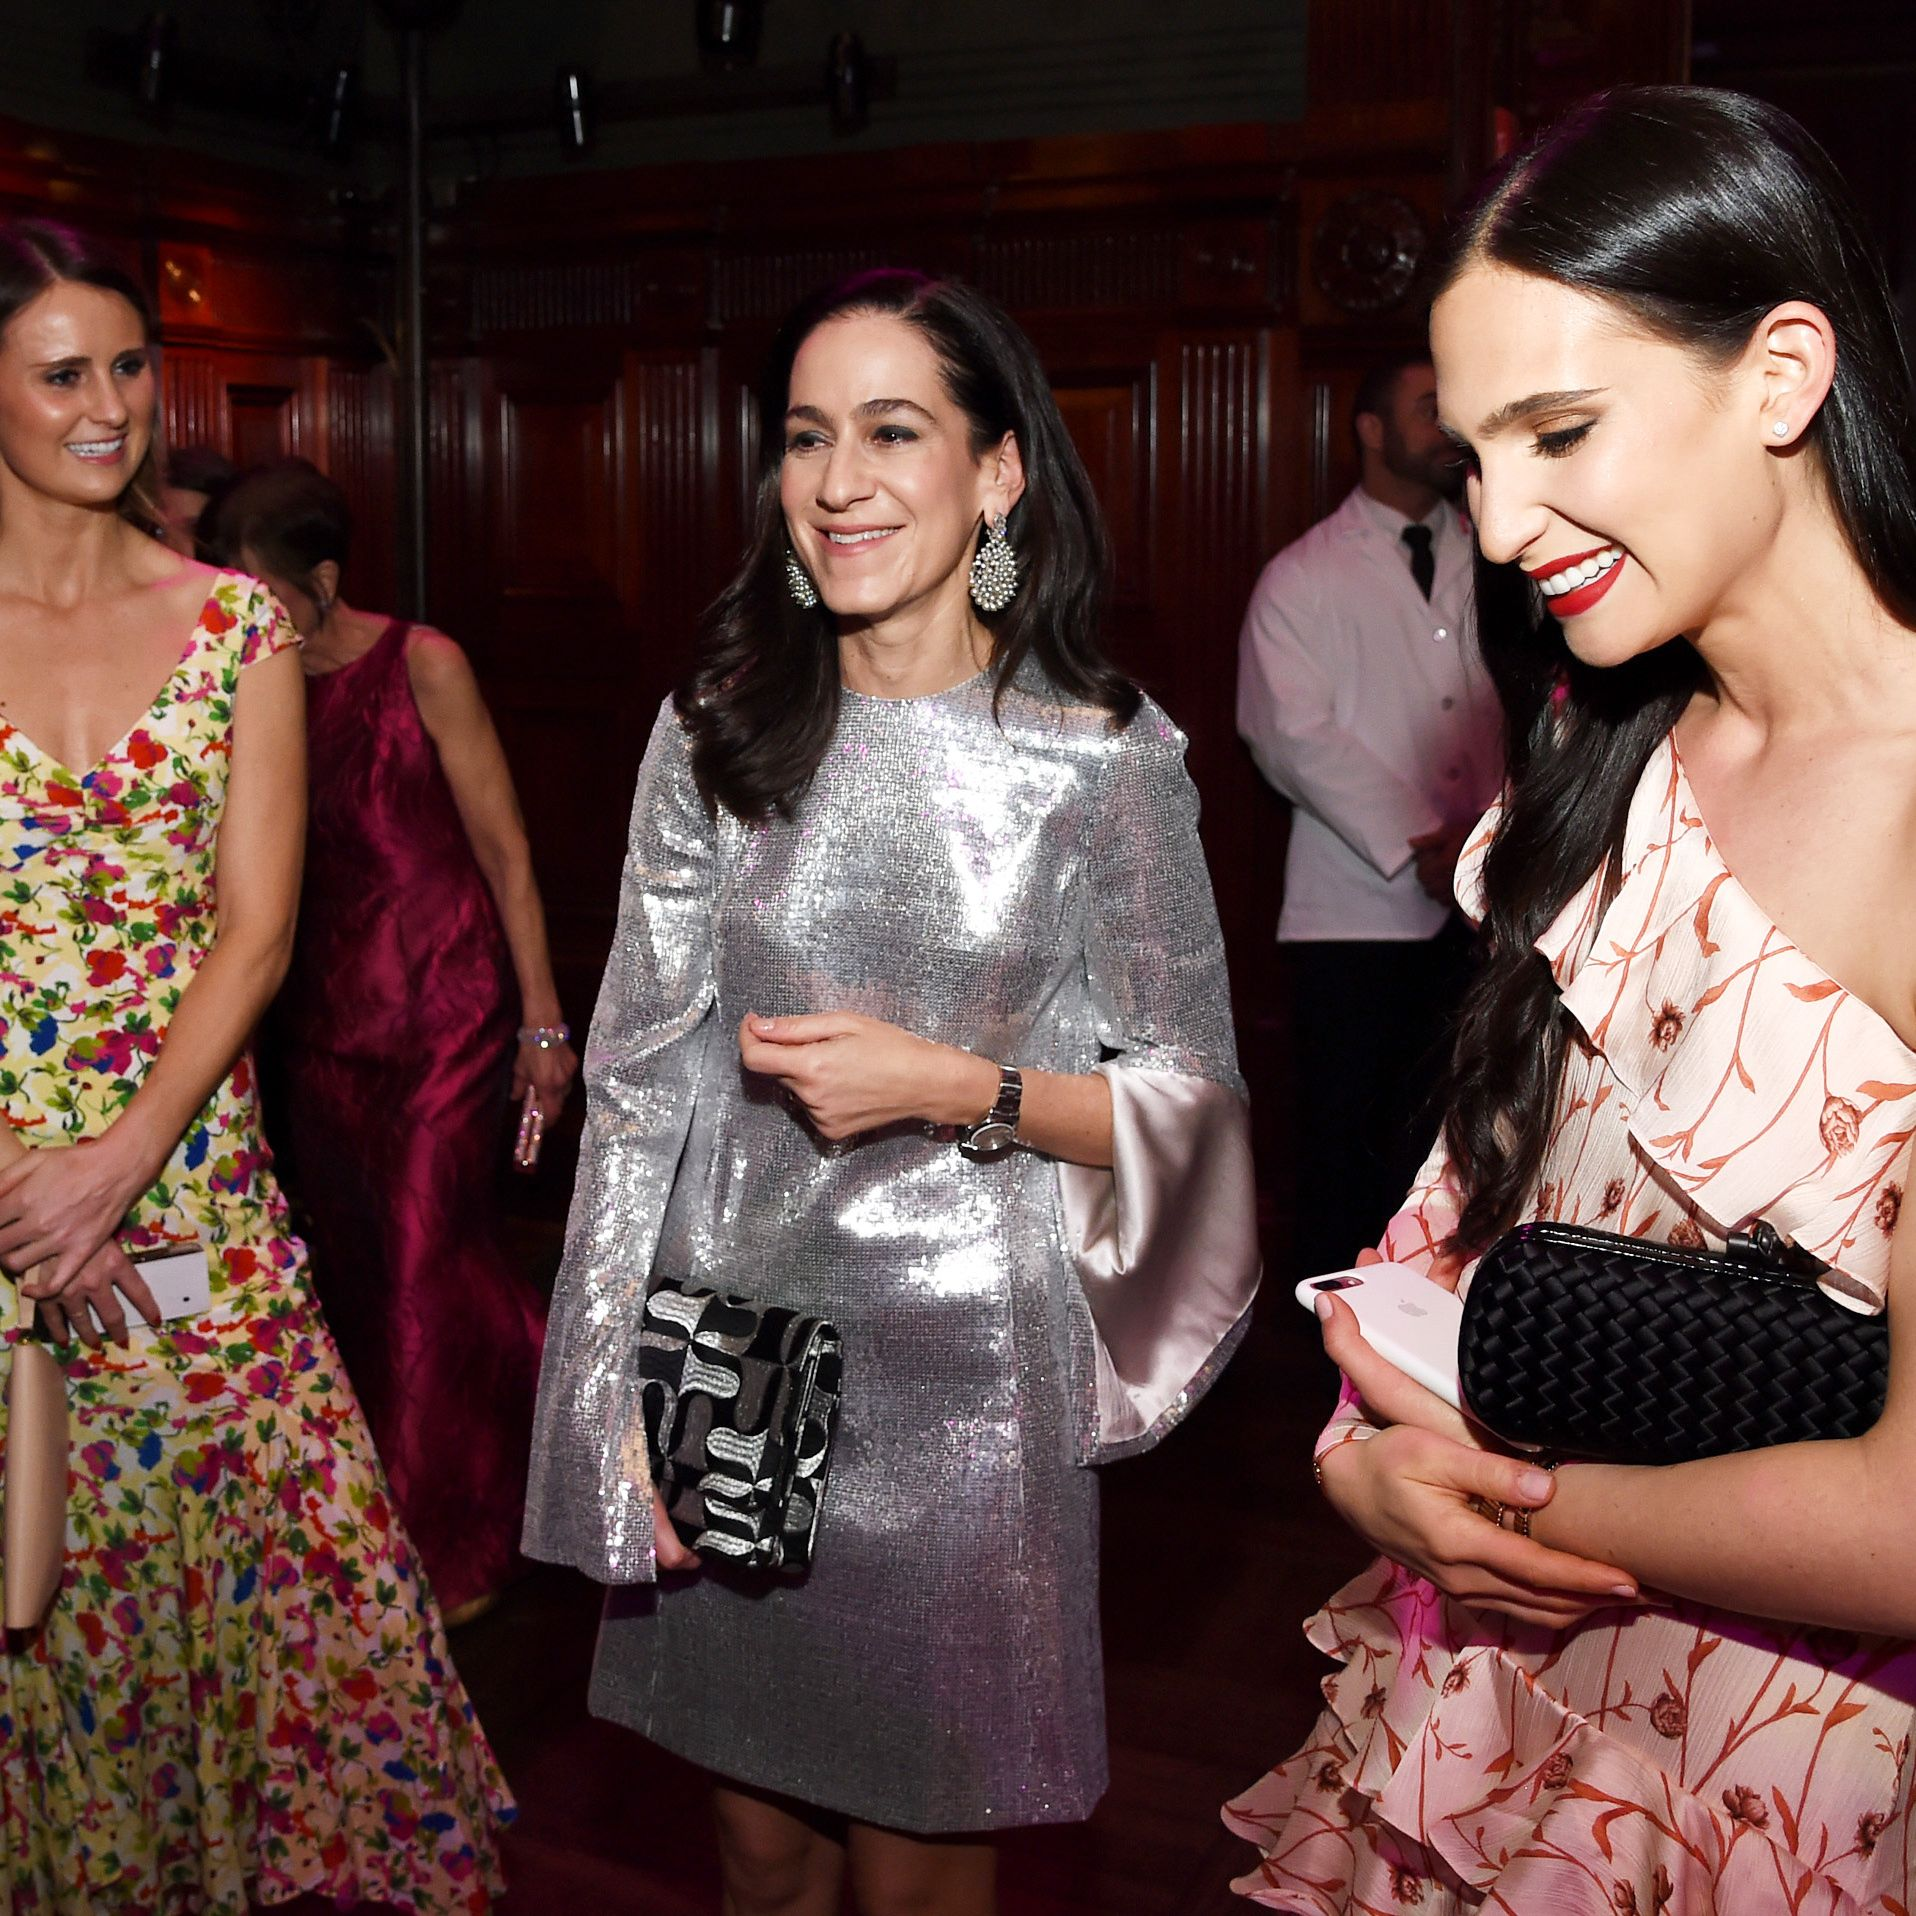 Spring gala season in New York is in full swing. Every other night, it seems, there is a glittering party to attend for causes ranging from historical preservation to art education and poverty reduction .